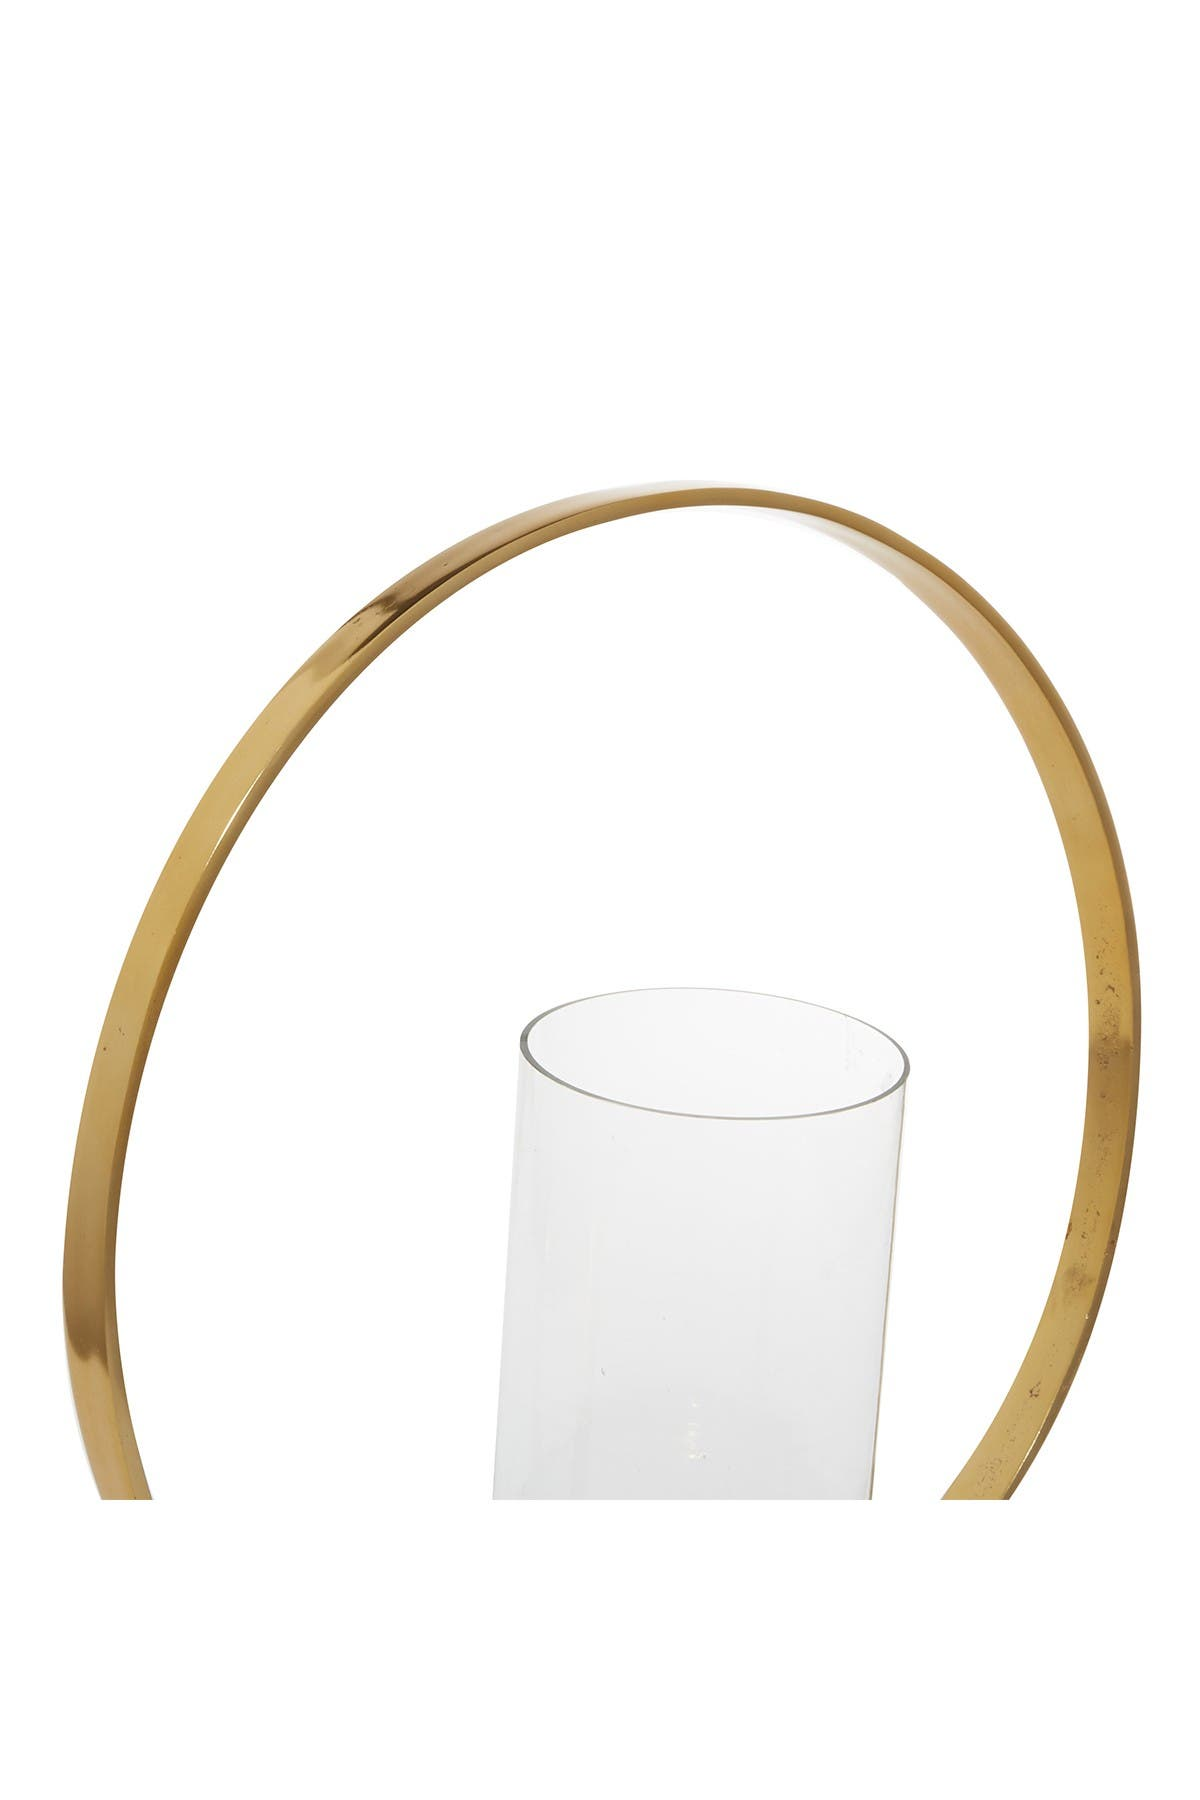 """Image of Willow Row Gold Aluminum Contemporary Candlestick Holder - 19"""" x 16"""" x 5"""""""